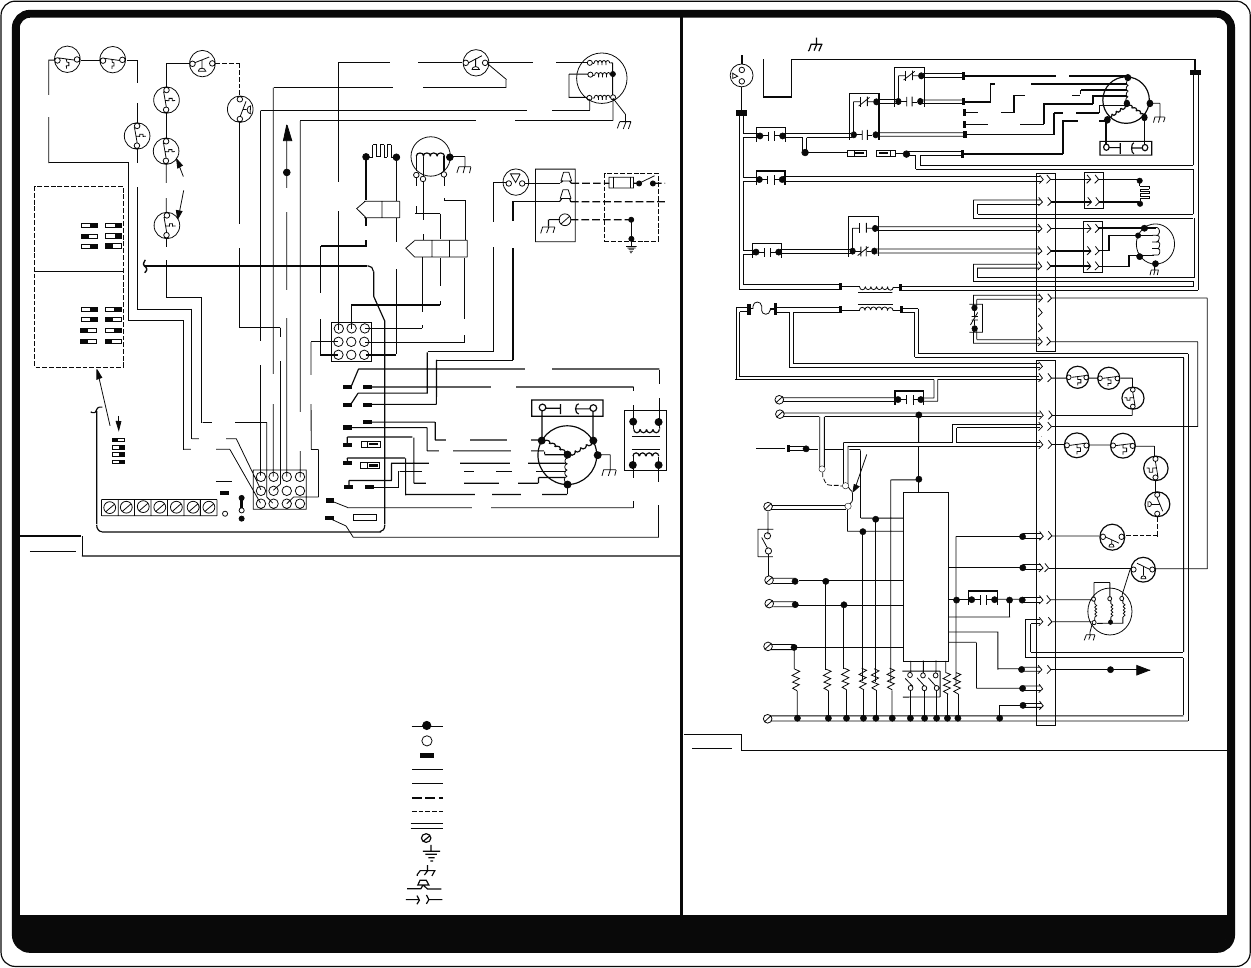 c2b73d22 c45f 43df a574 b6e707ea0cc7 bg8 power flame wiring diagram power flame burners wiring diagrams honeywell pressure switch wiring diagram at n-0.co